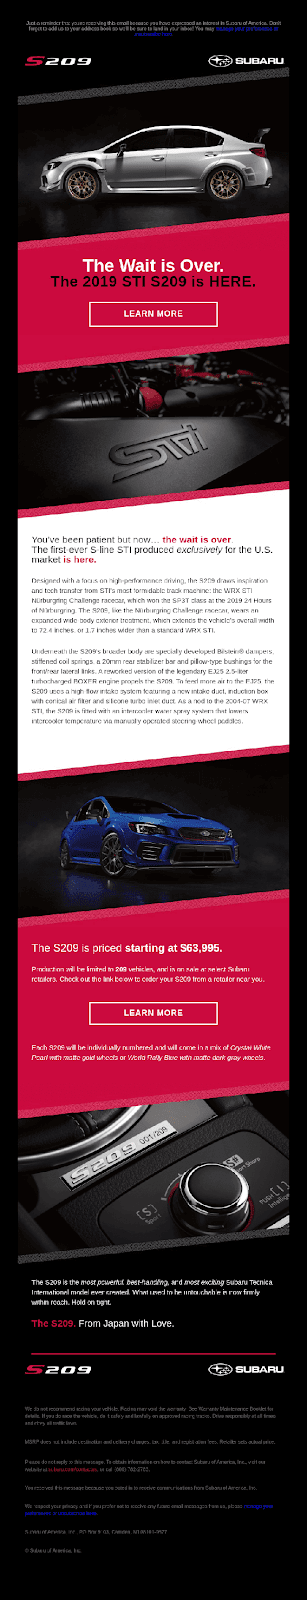 Subaru product launch email